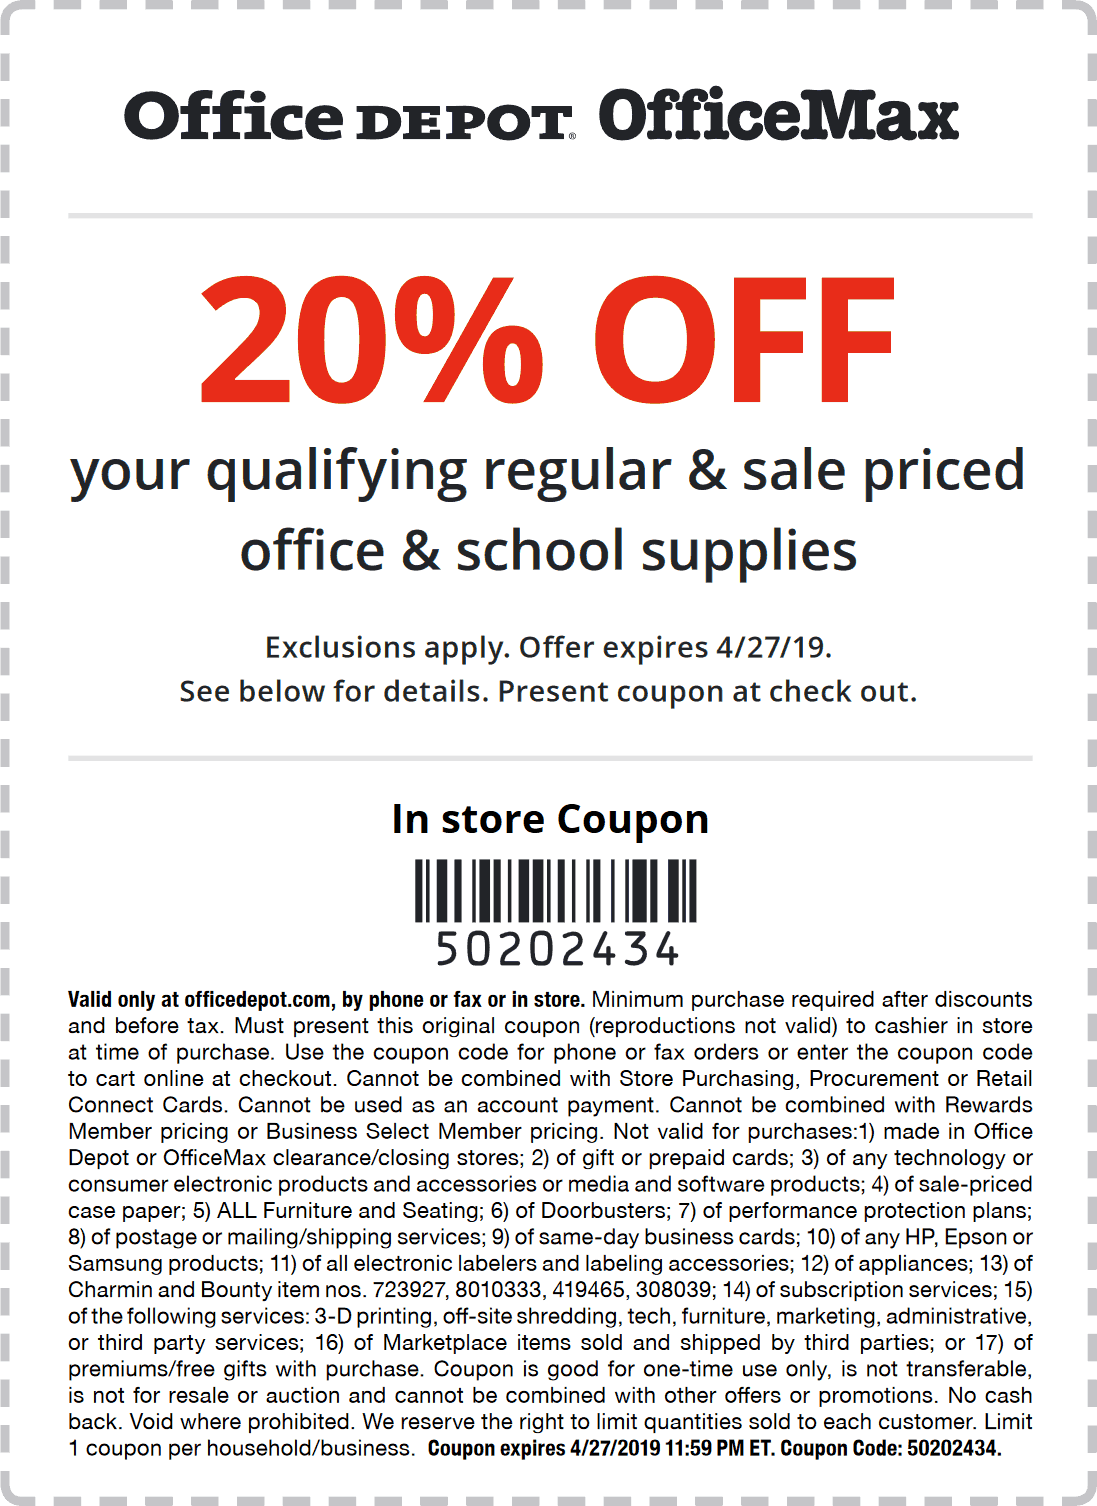 Office Depot Coupon June 2019 20% off at Office Depot & OfficeMax, or online via promo code 50202434